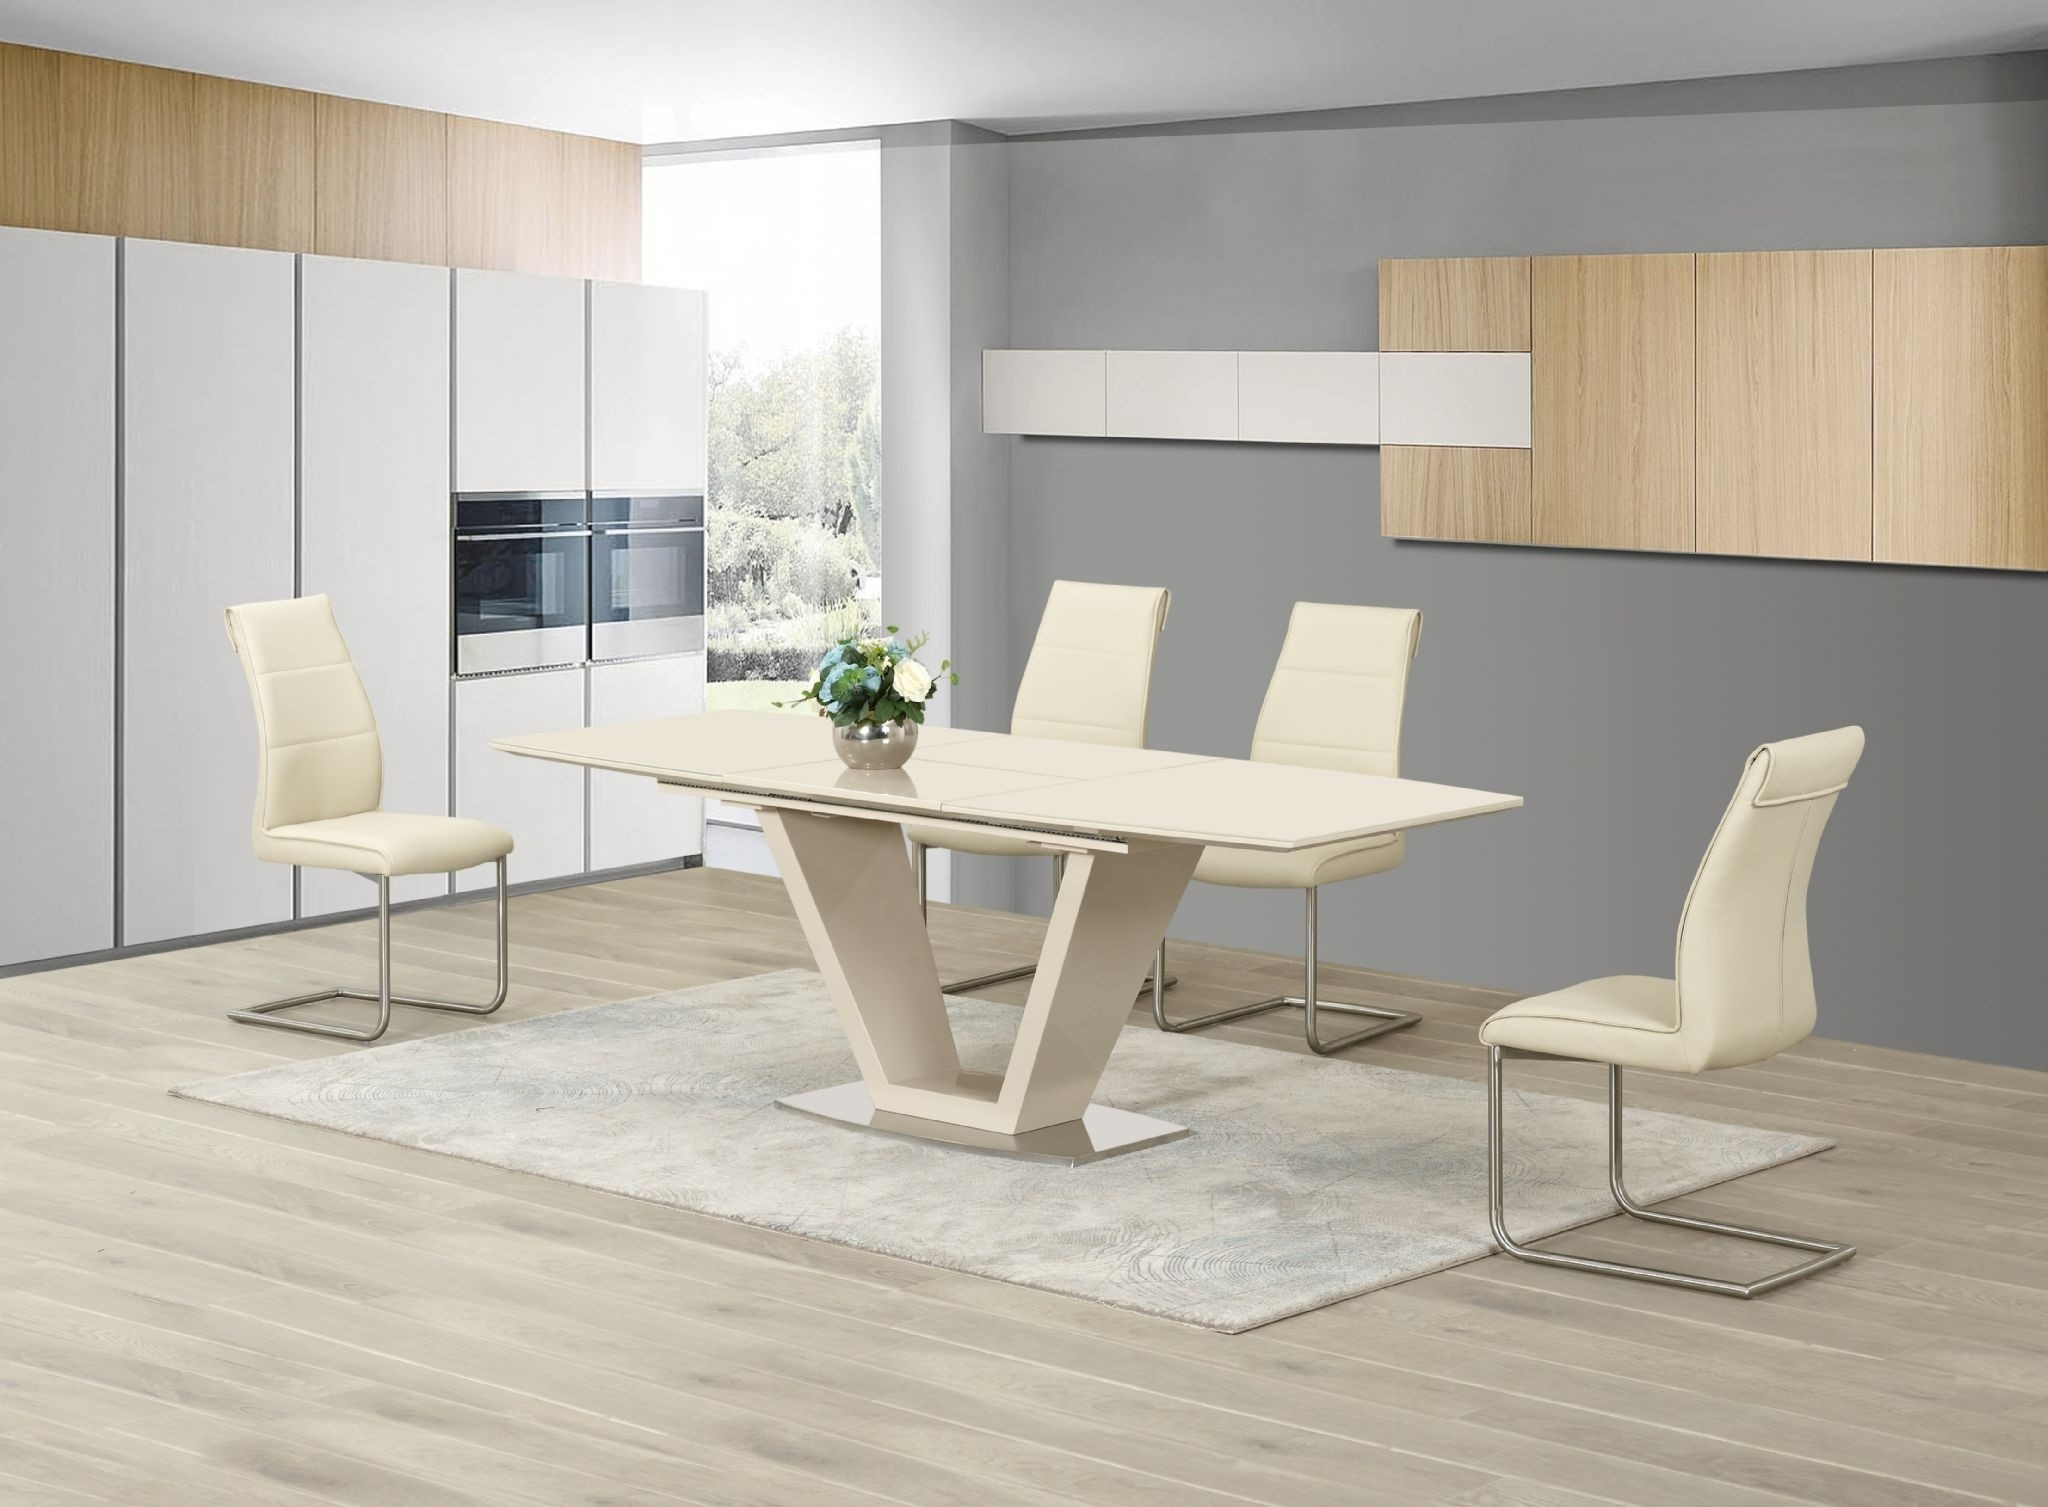 Extending Marble Dining Tables with regard to Best and Newest Floris Cream Gloss Extending Dining Table 160-220Cm